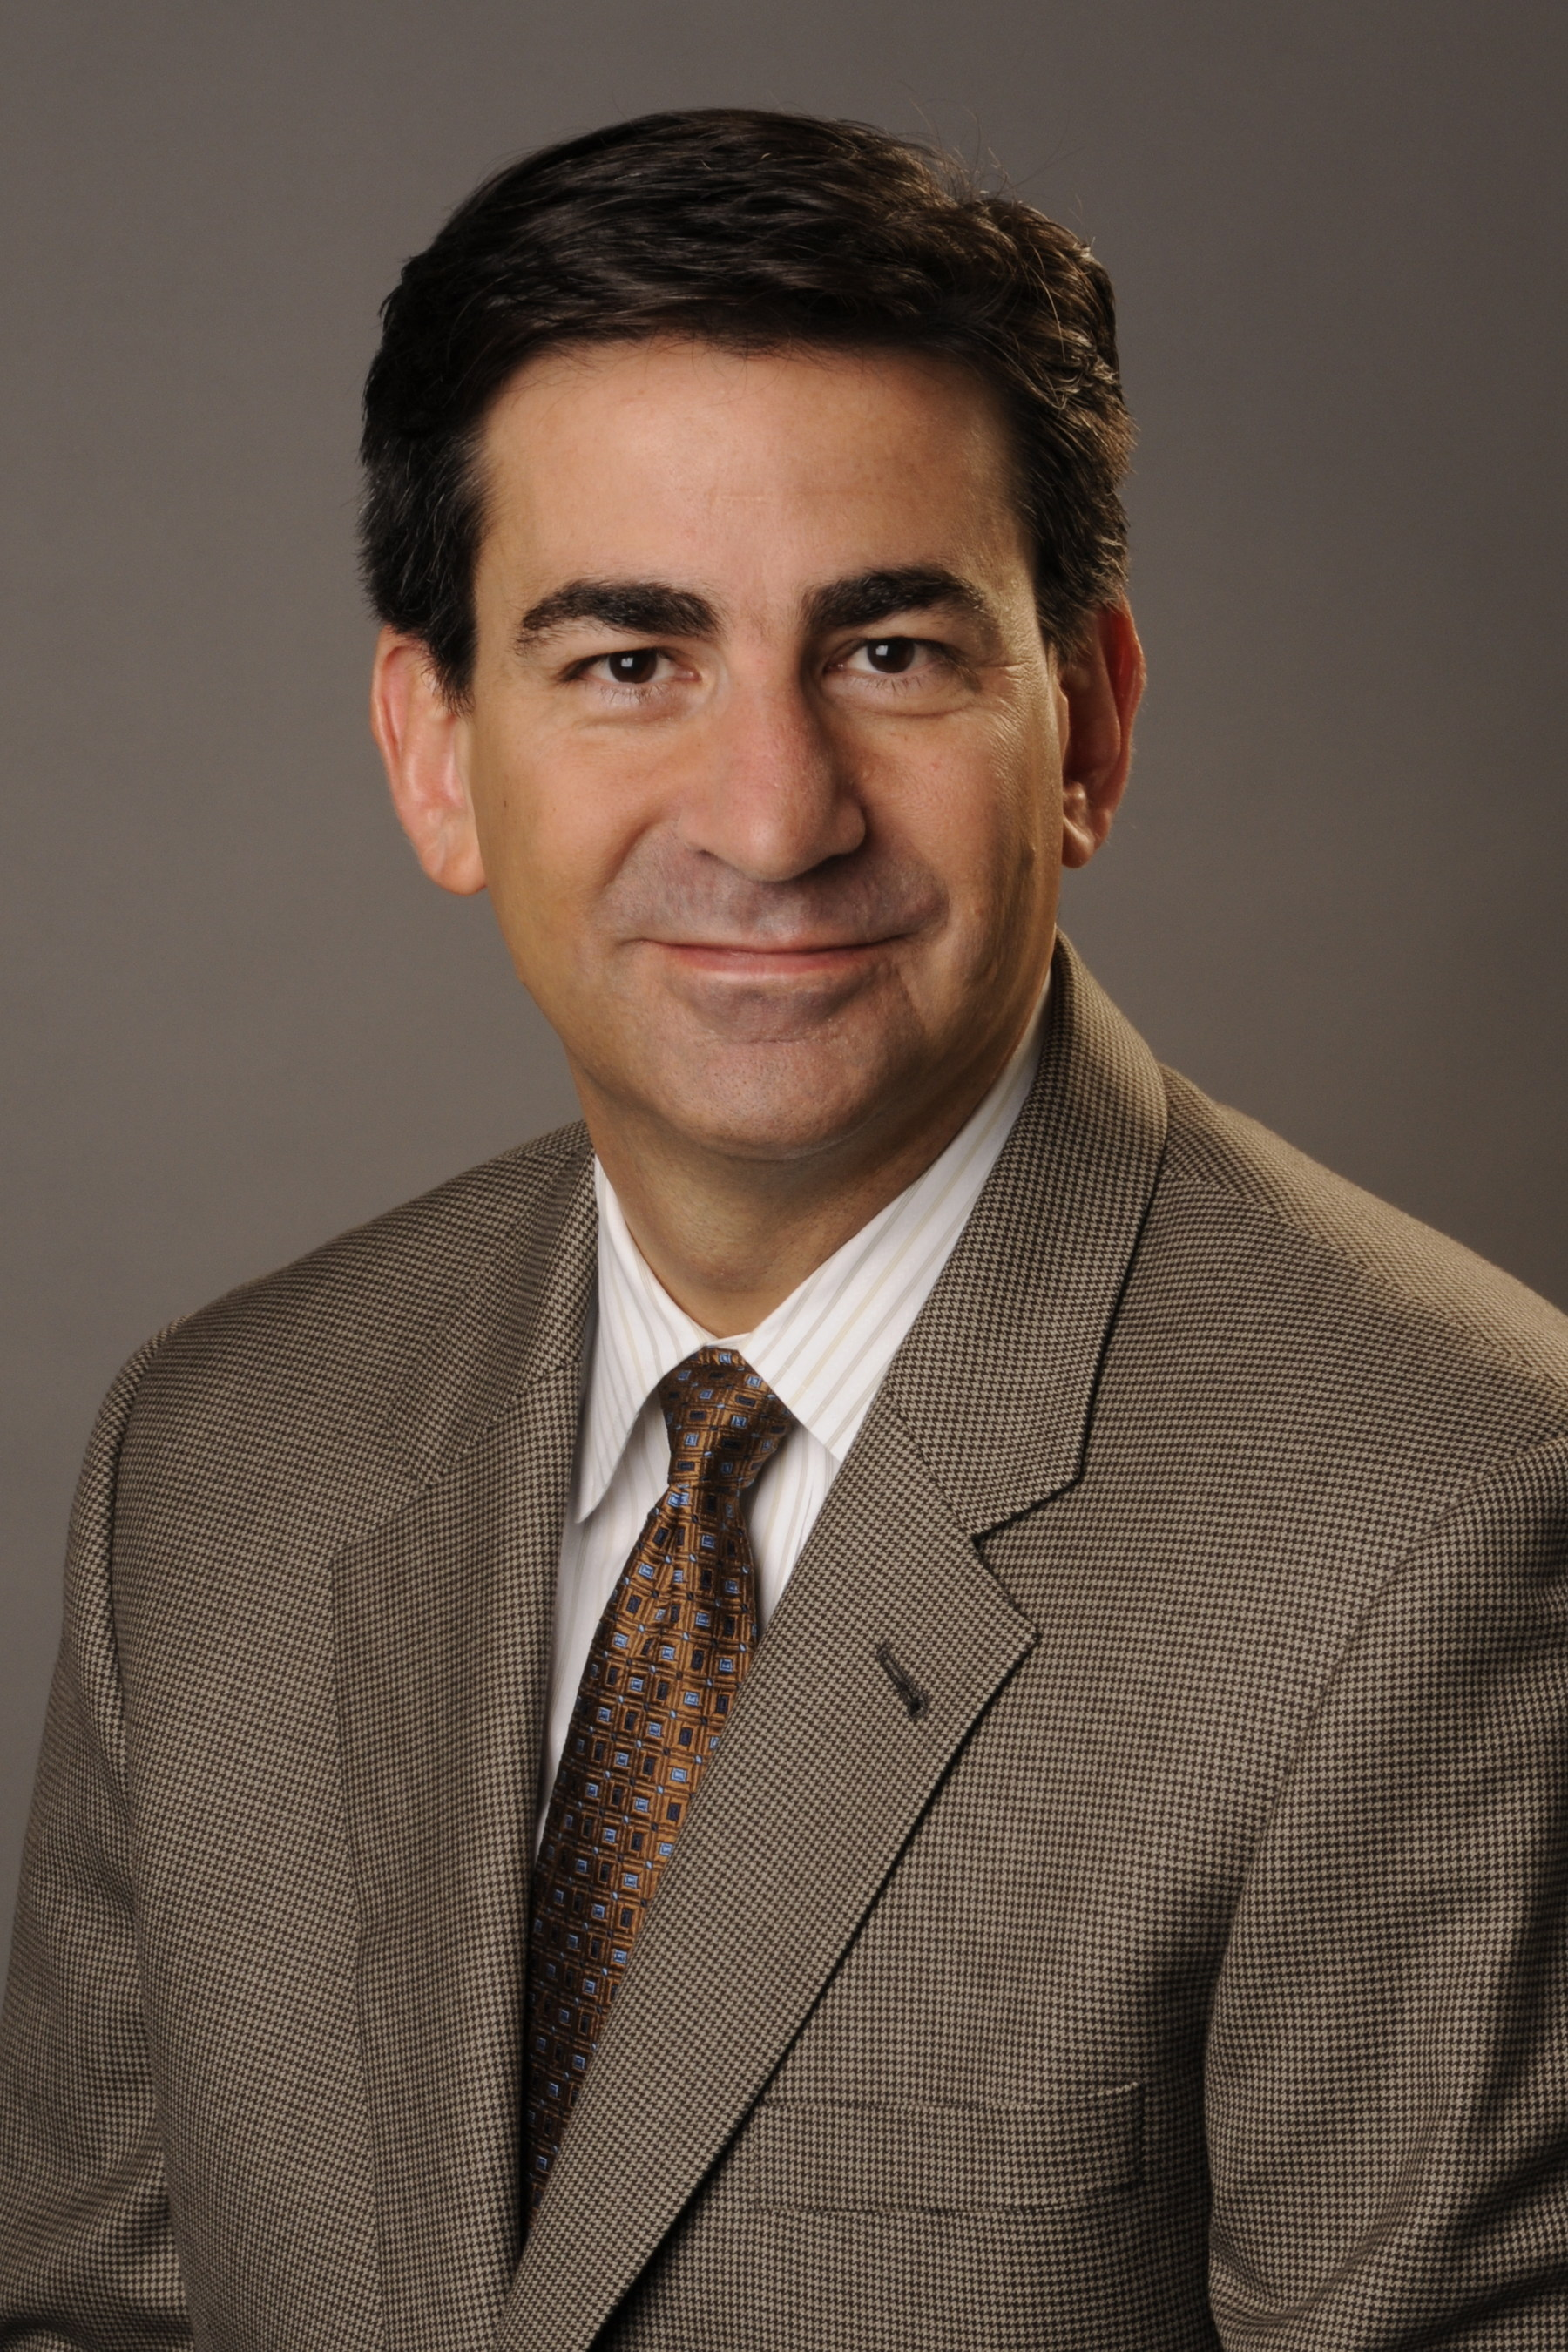 Frank R. Jimenez Appointed General Counsel for Raytheon Company